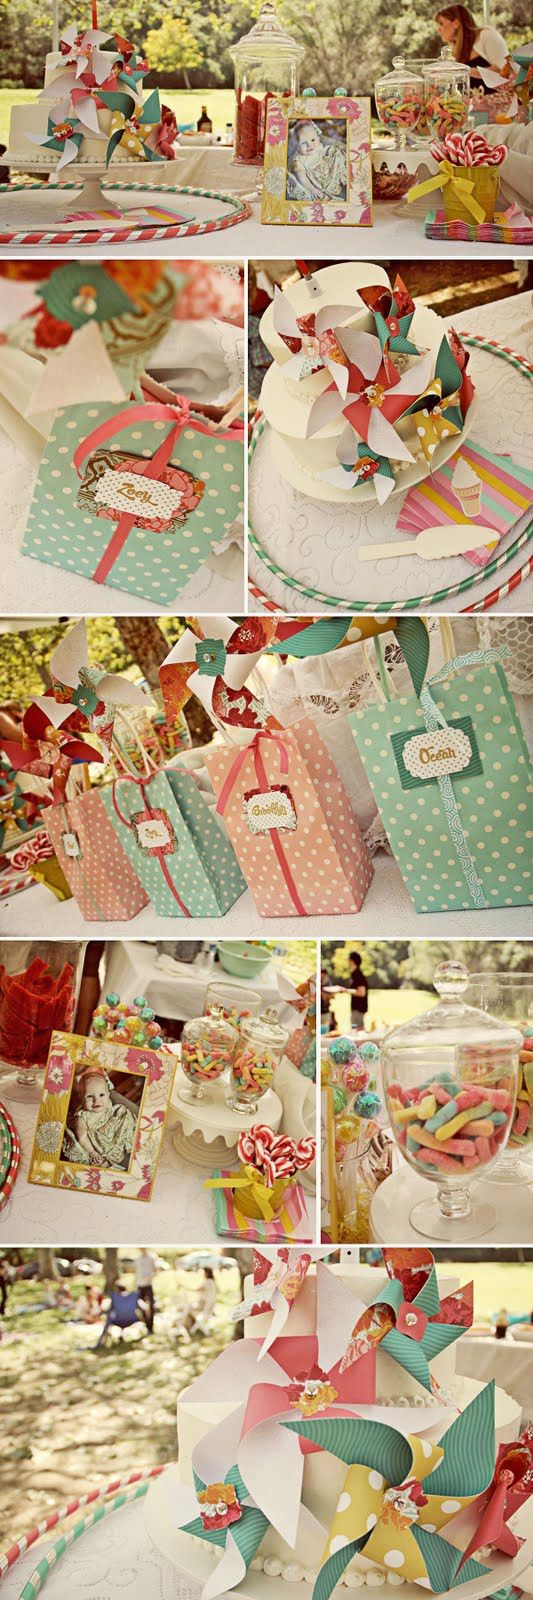 Vintage pinwheel party love this for a baby shower or little girl